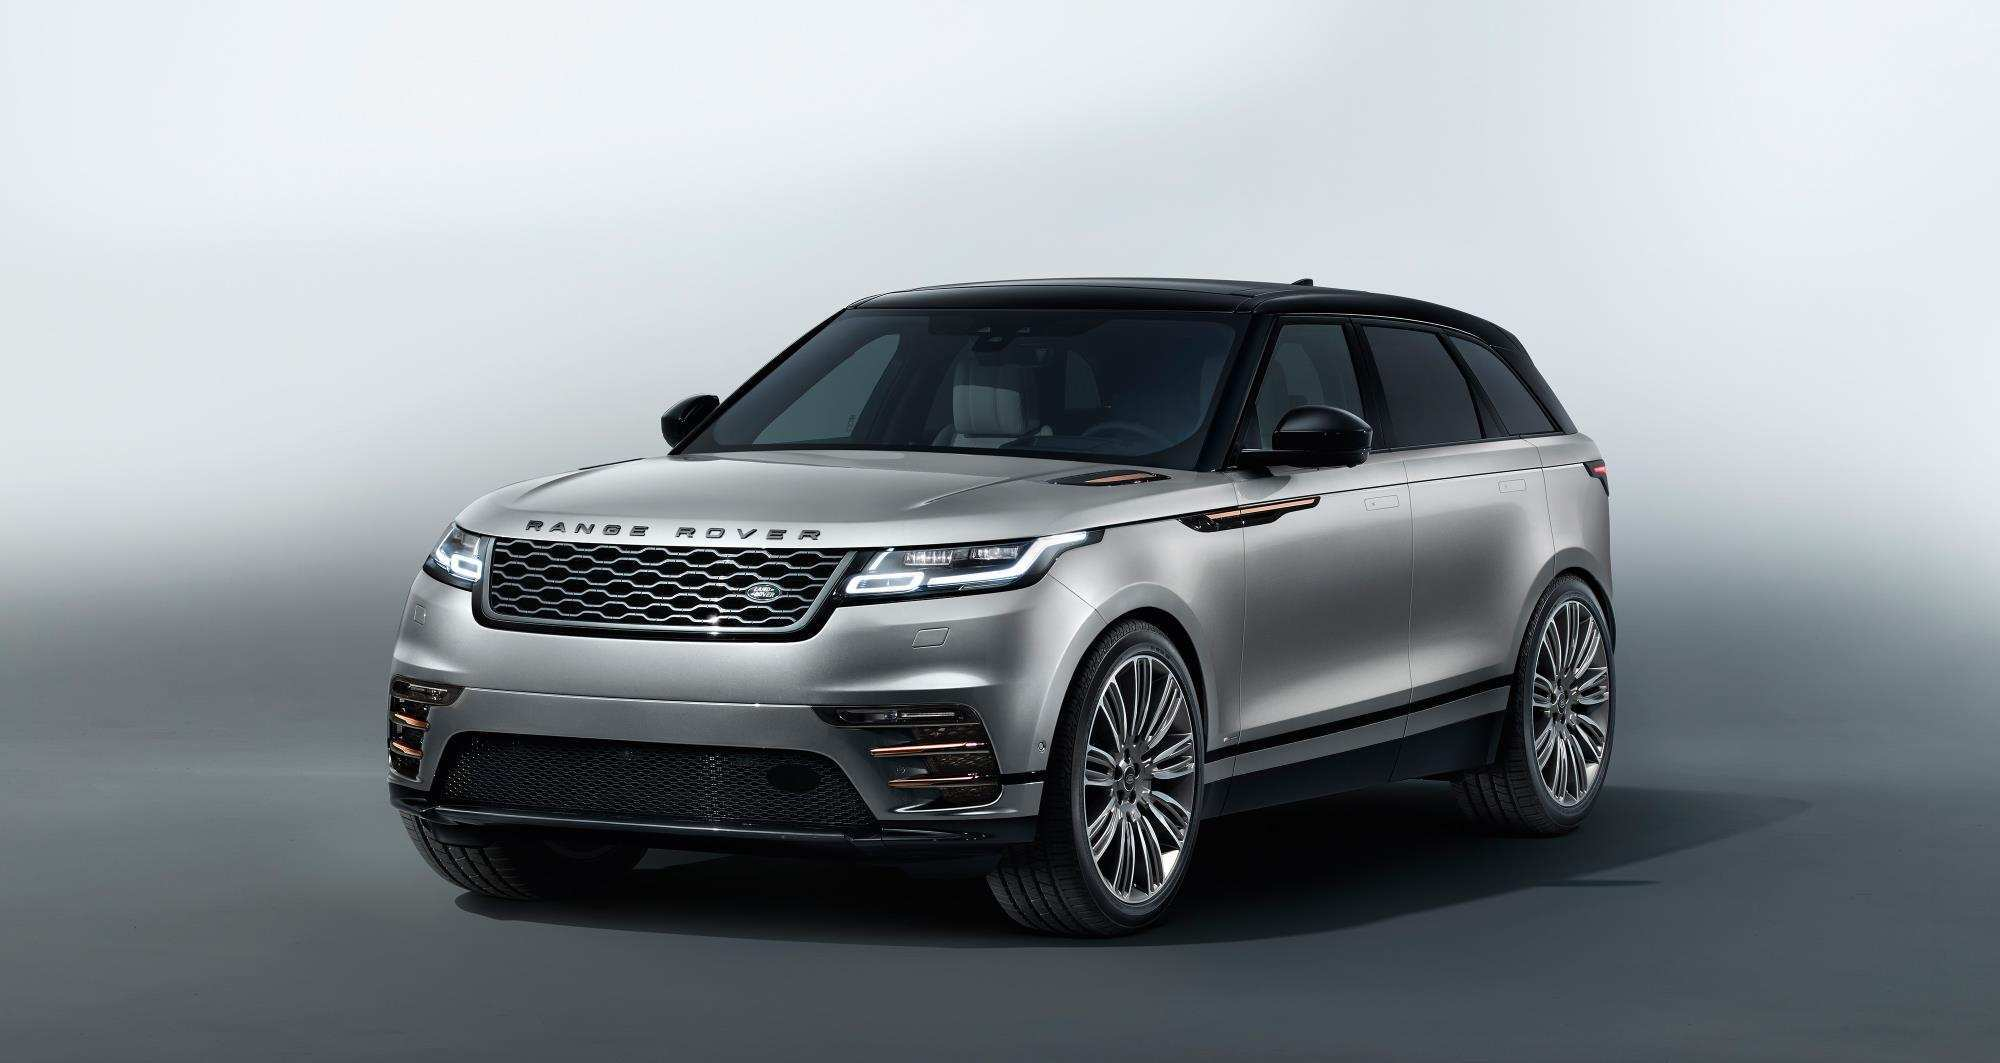 19 Great Land Rover All Electric By 2020 Engine with Land Rover All Electric By 2020